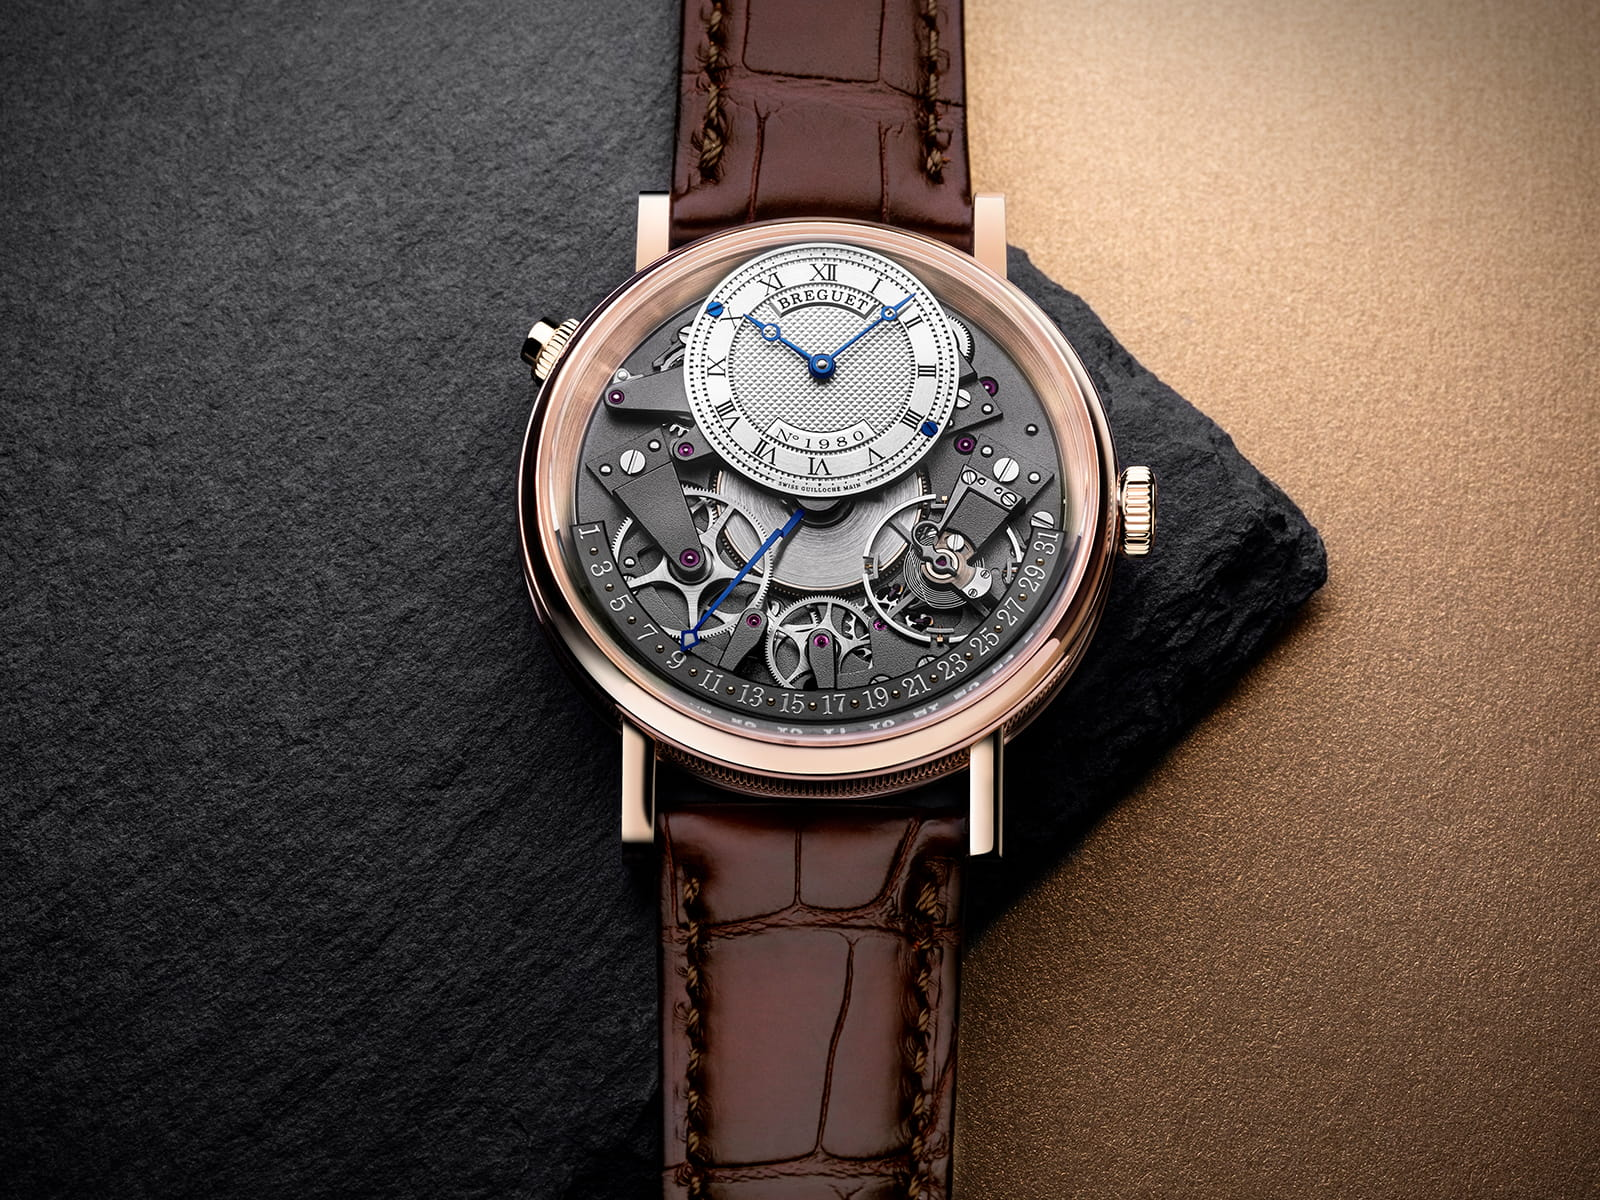 7597br-g1-9wu-breguet-tradition-quantieme-retrograde-7597-rose-gold-1.jpg